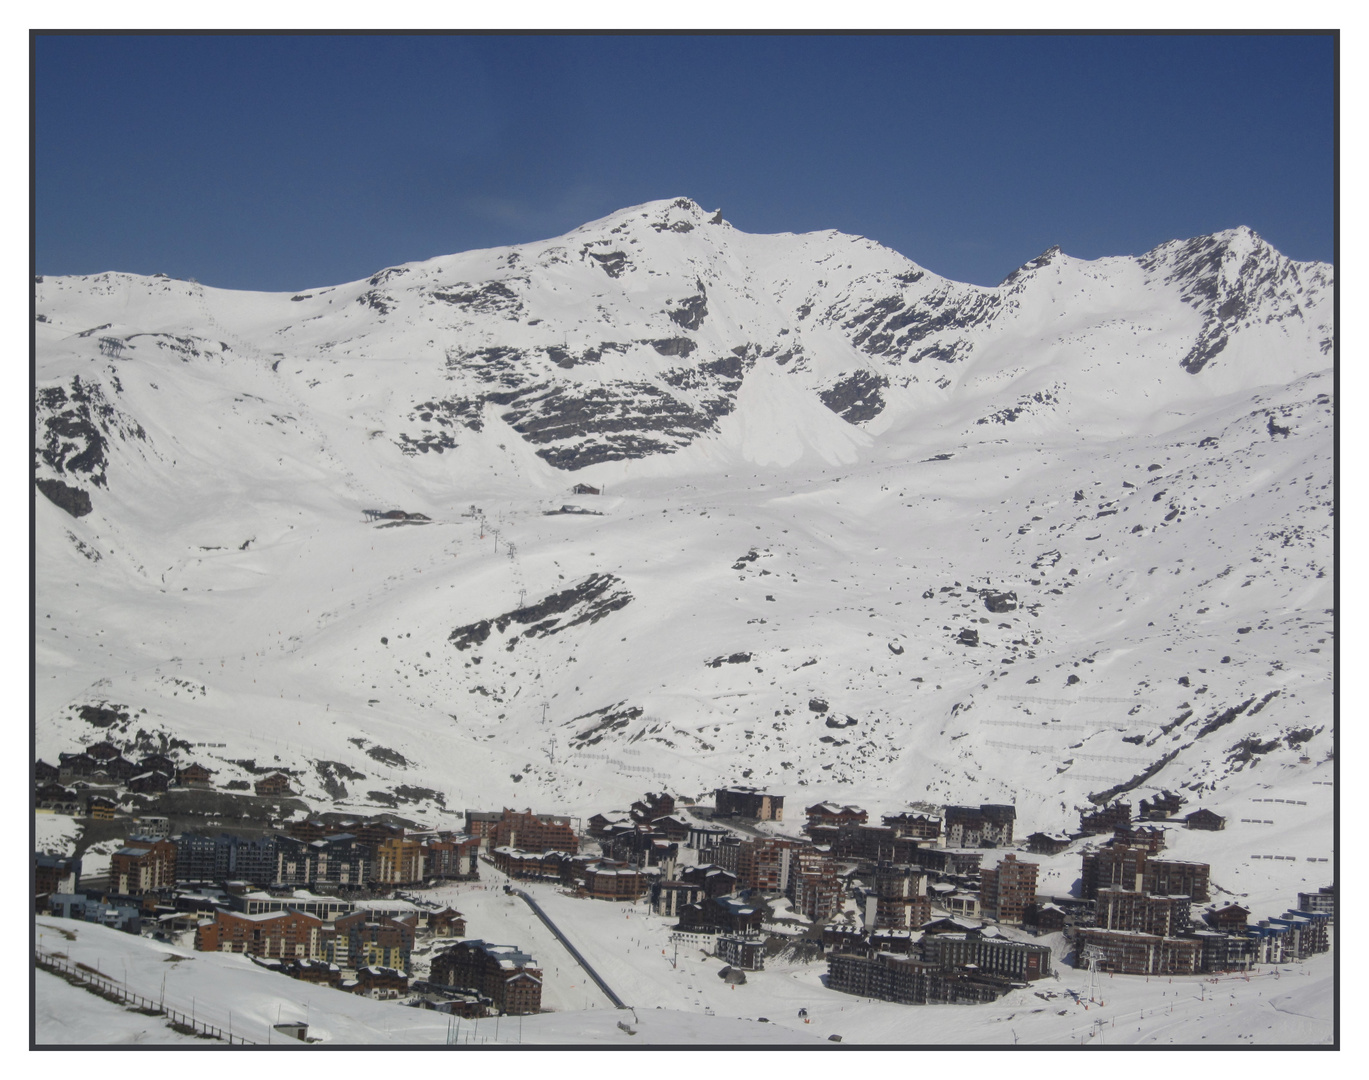 Val Thorrens